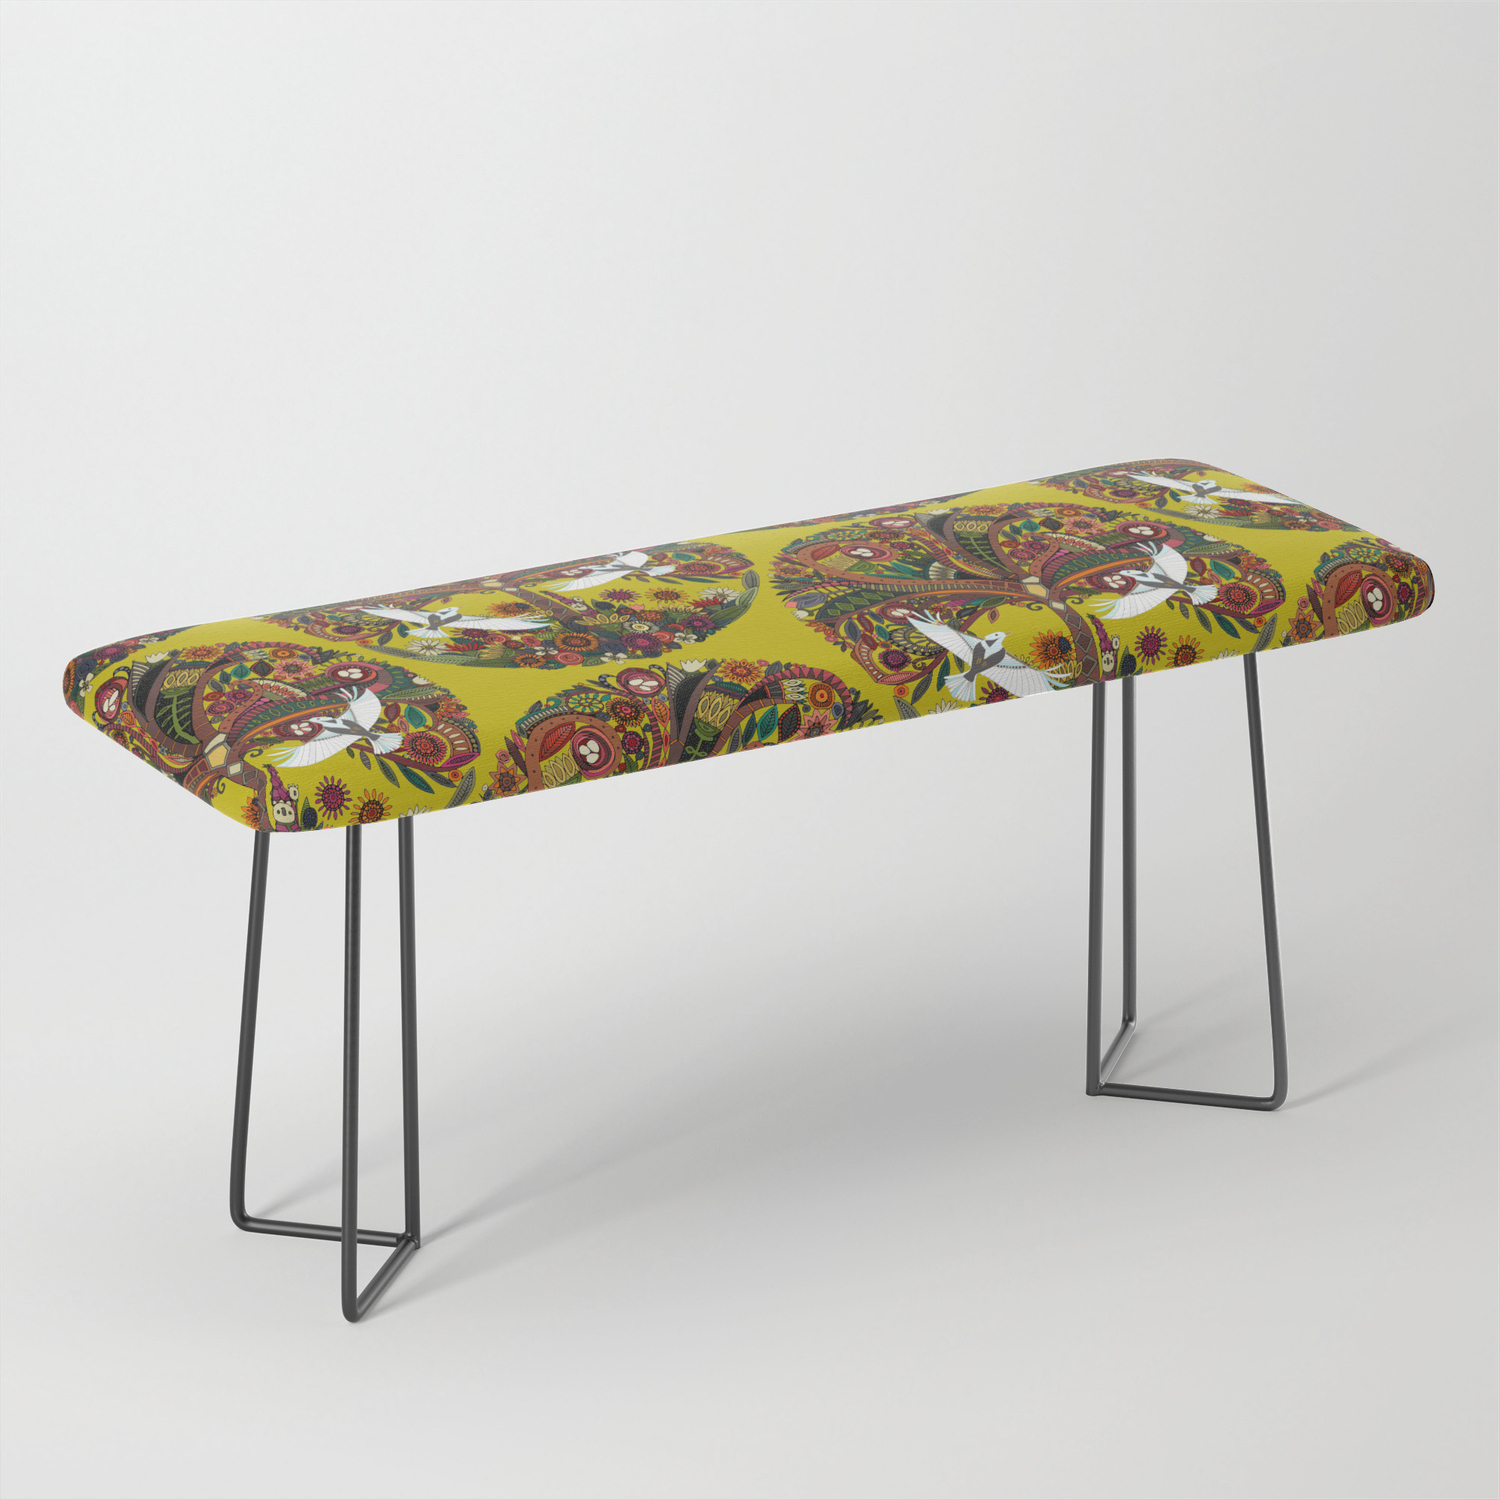 Tree Of Life Chartreuse Benchsharonturner | Society6 Regarding Tree Of Life Iron Garden Benches (View 15 of 25)